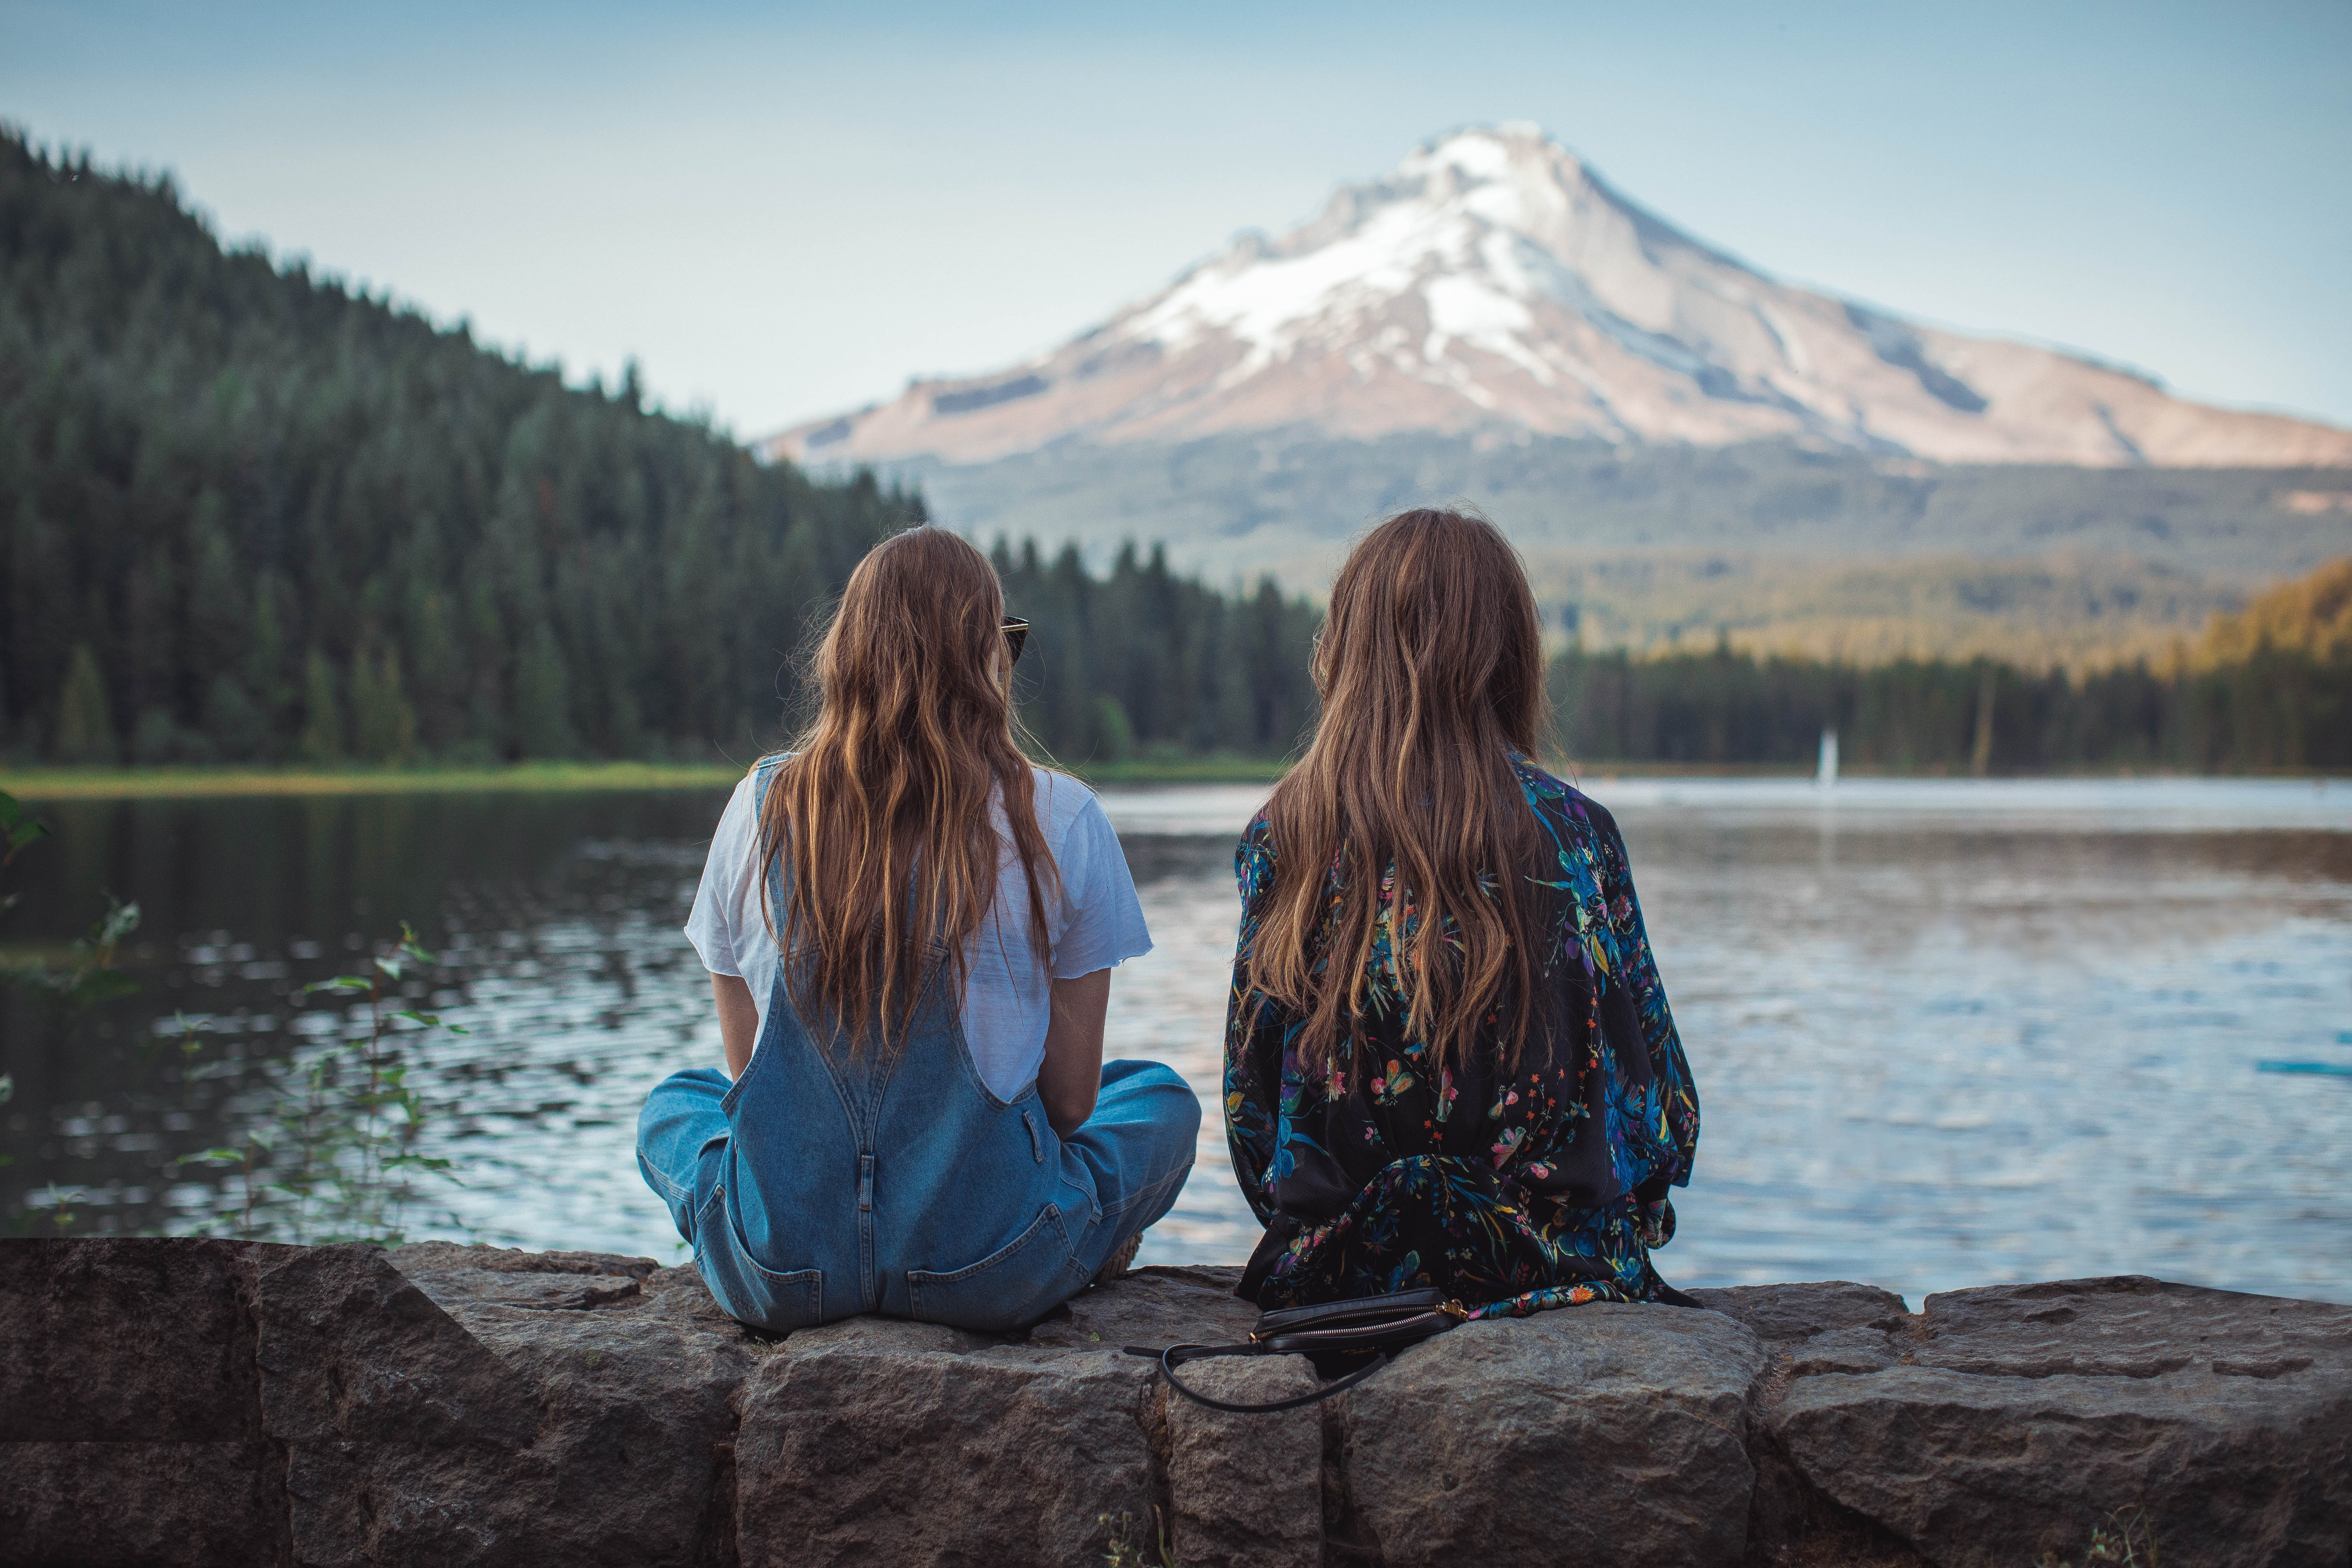 2 girls sitting by a lake looking at a mountain